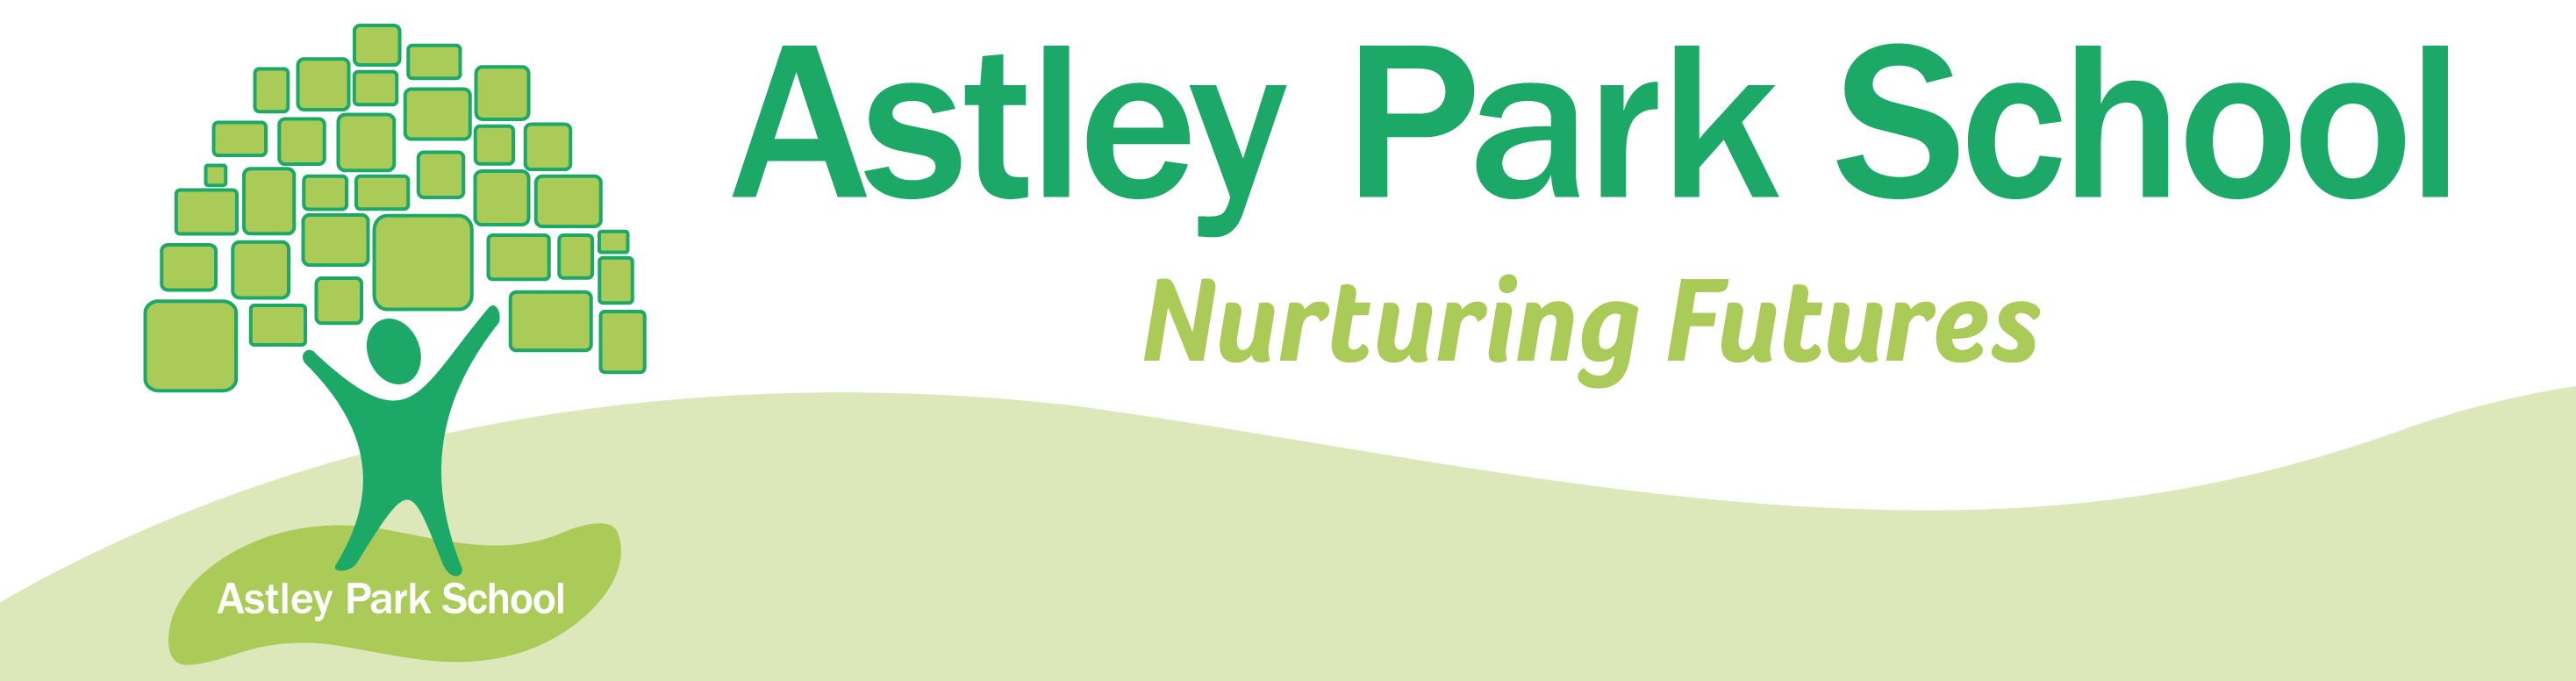 ASD - Useful Information | Astley Park School